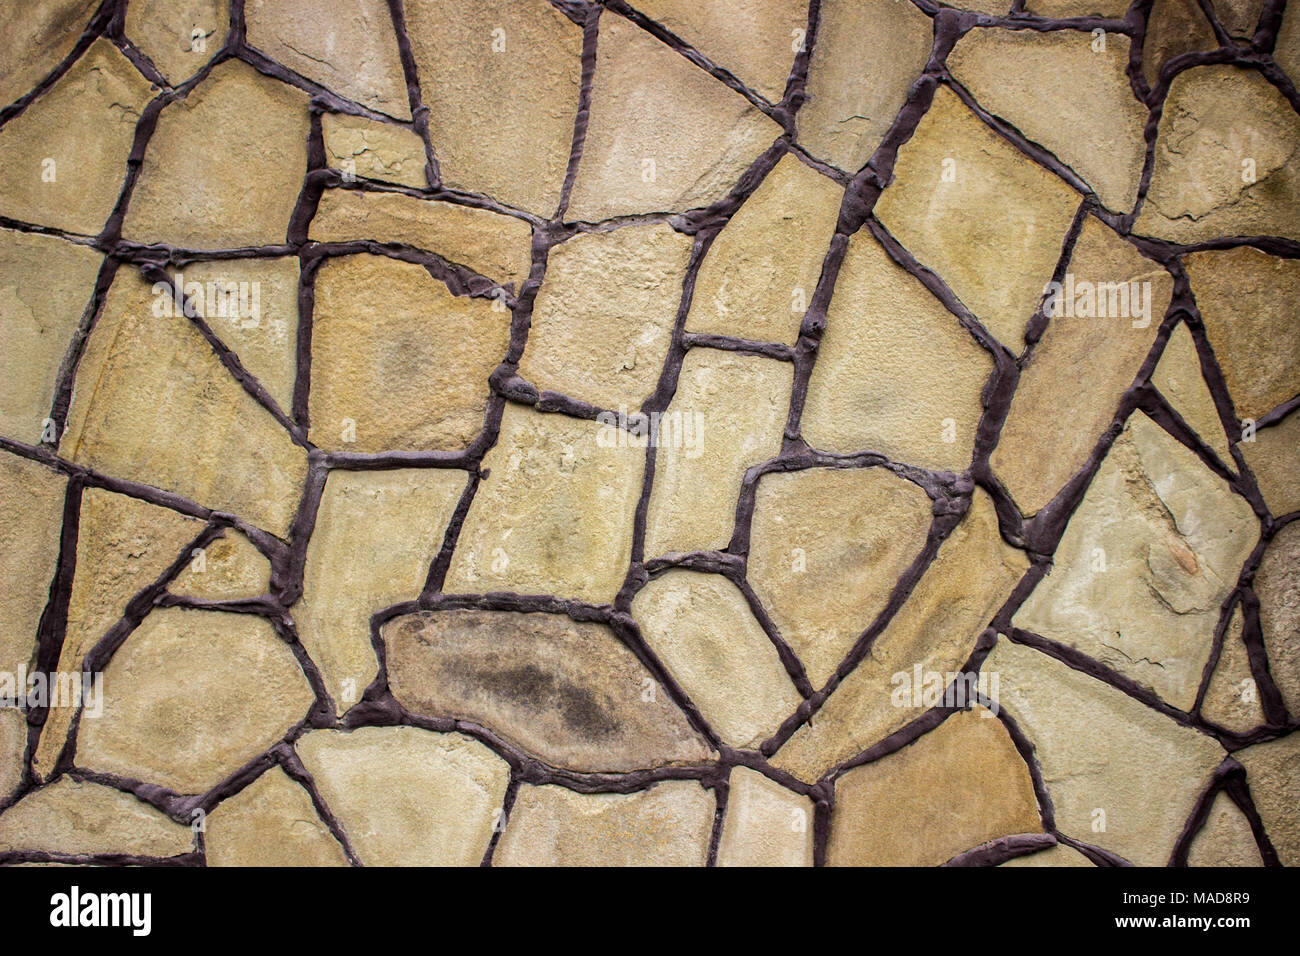 Bright and unusual stone background. Decor wall from natural sandstone. - Stock Image